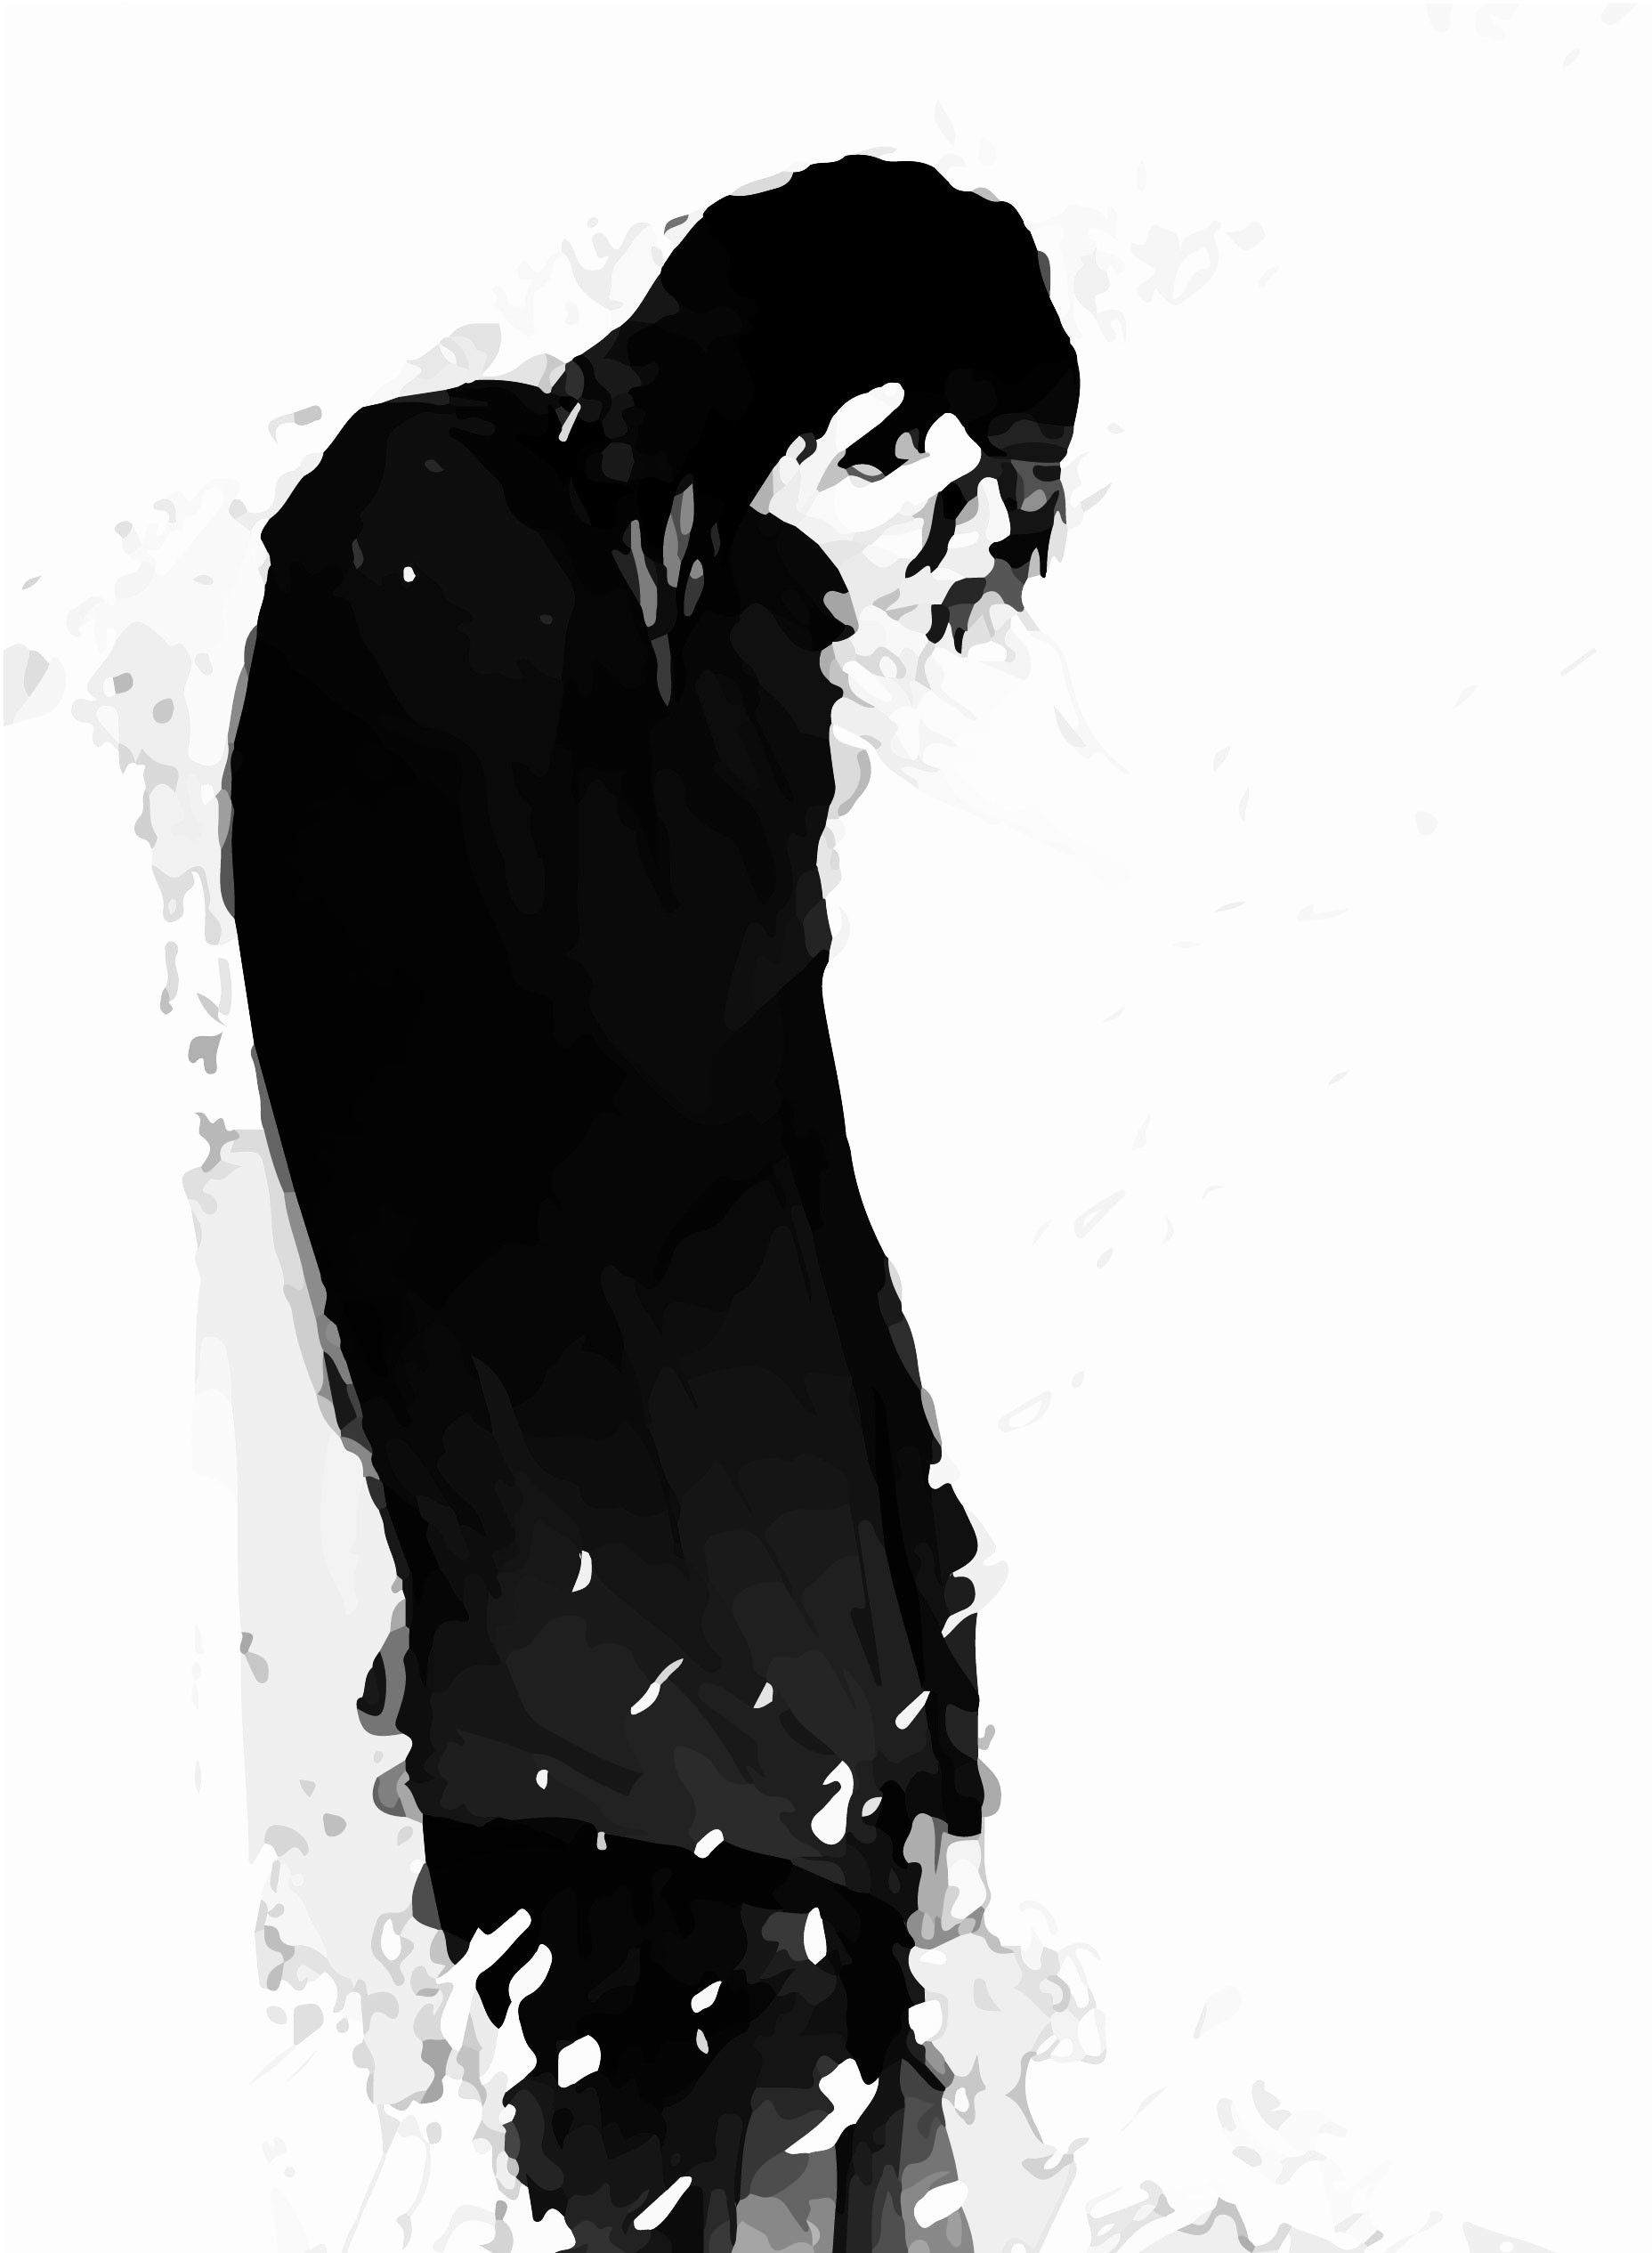 Depressed Anime Boy Drawings Wallpapers Wallpaper Cave